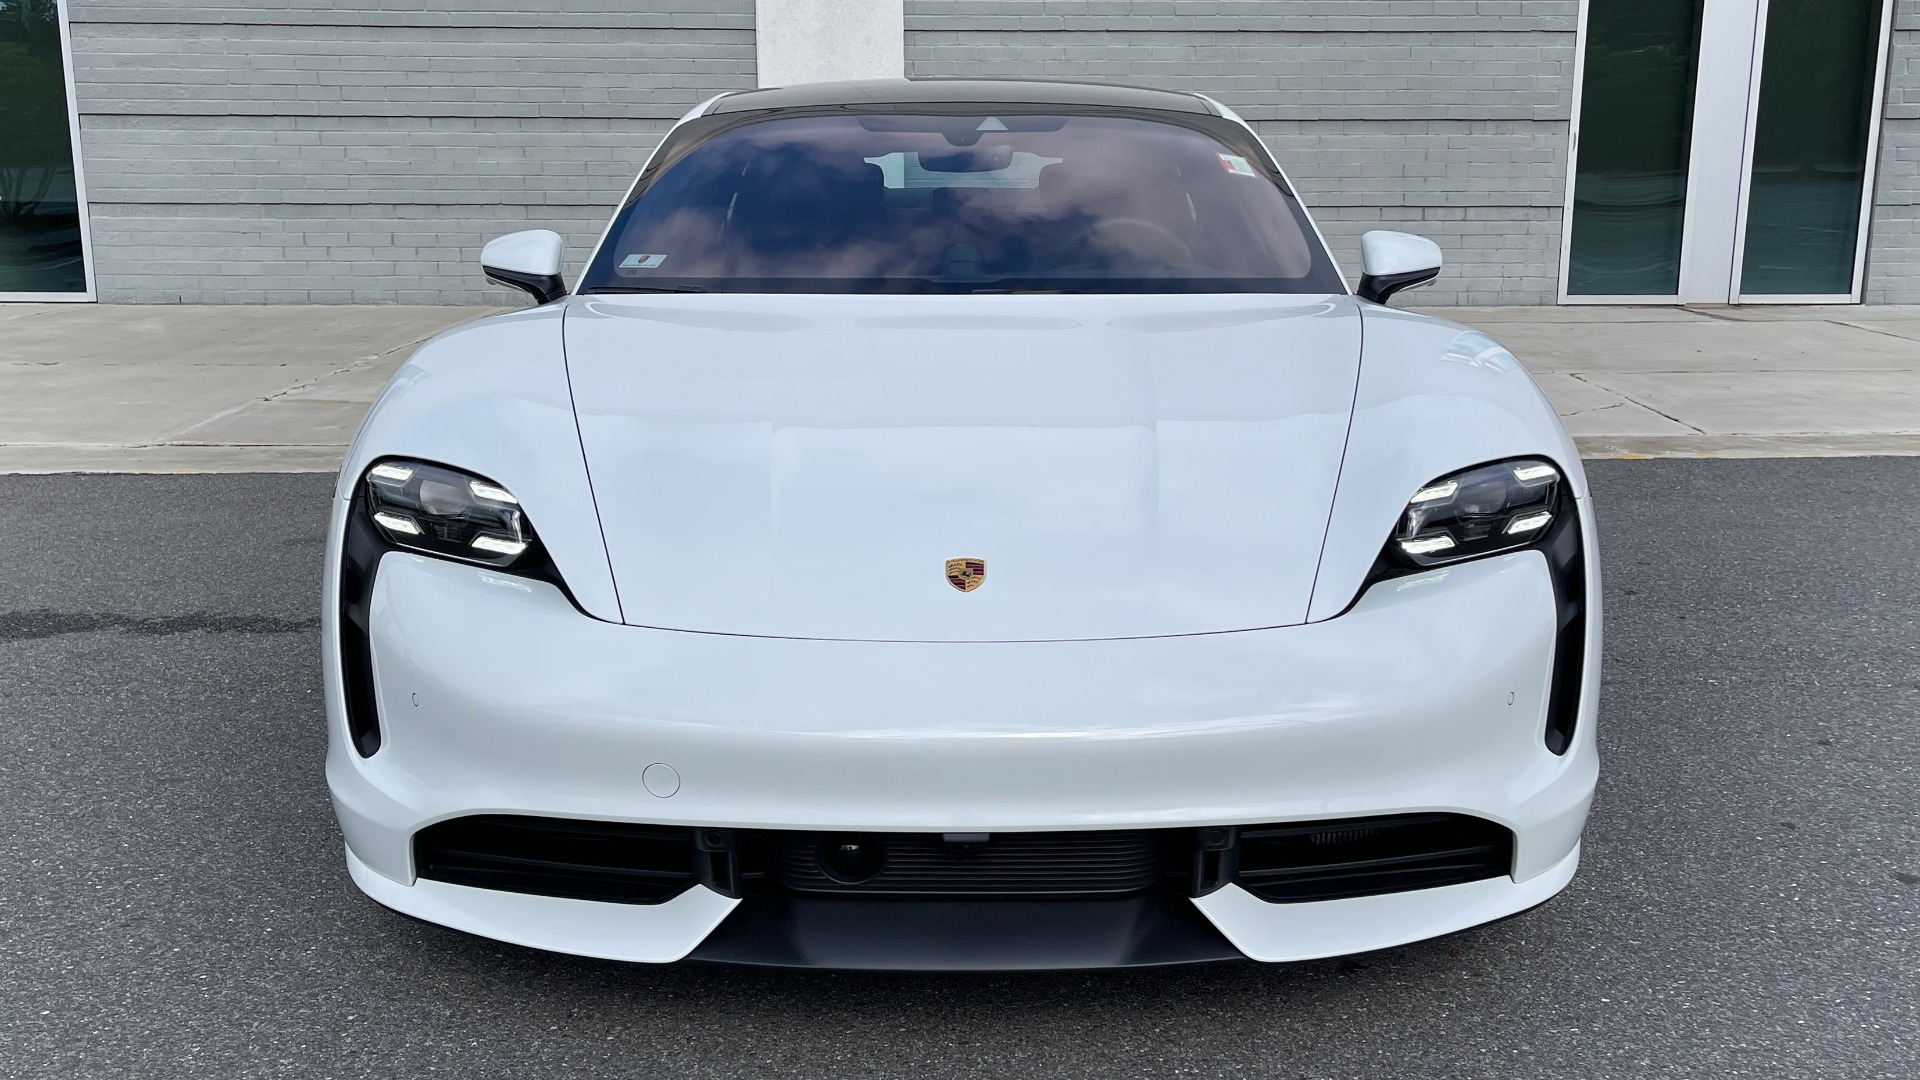 Used 2020 Porsche TAYCAN TURBO SEDAN / AWD / NAV / BOSE / PANO-ROOF / LCA / SURROUND VIEW for sale $162,995 at Formula Imports in Charlotte NC 28227 15